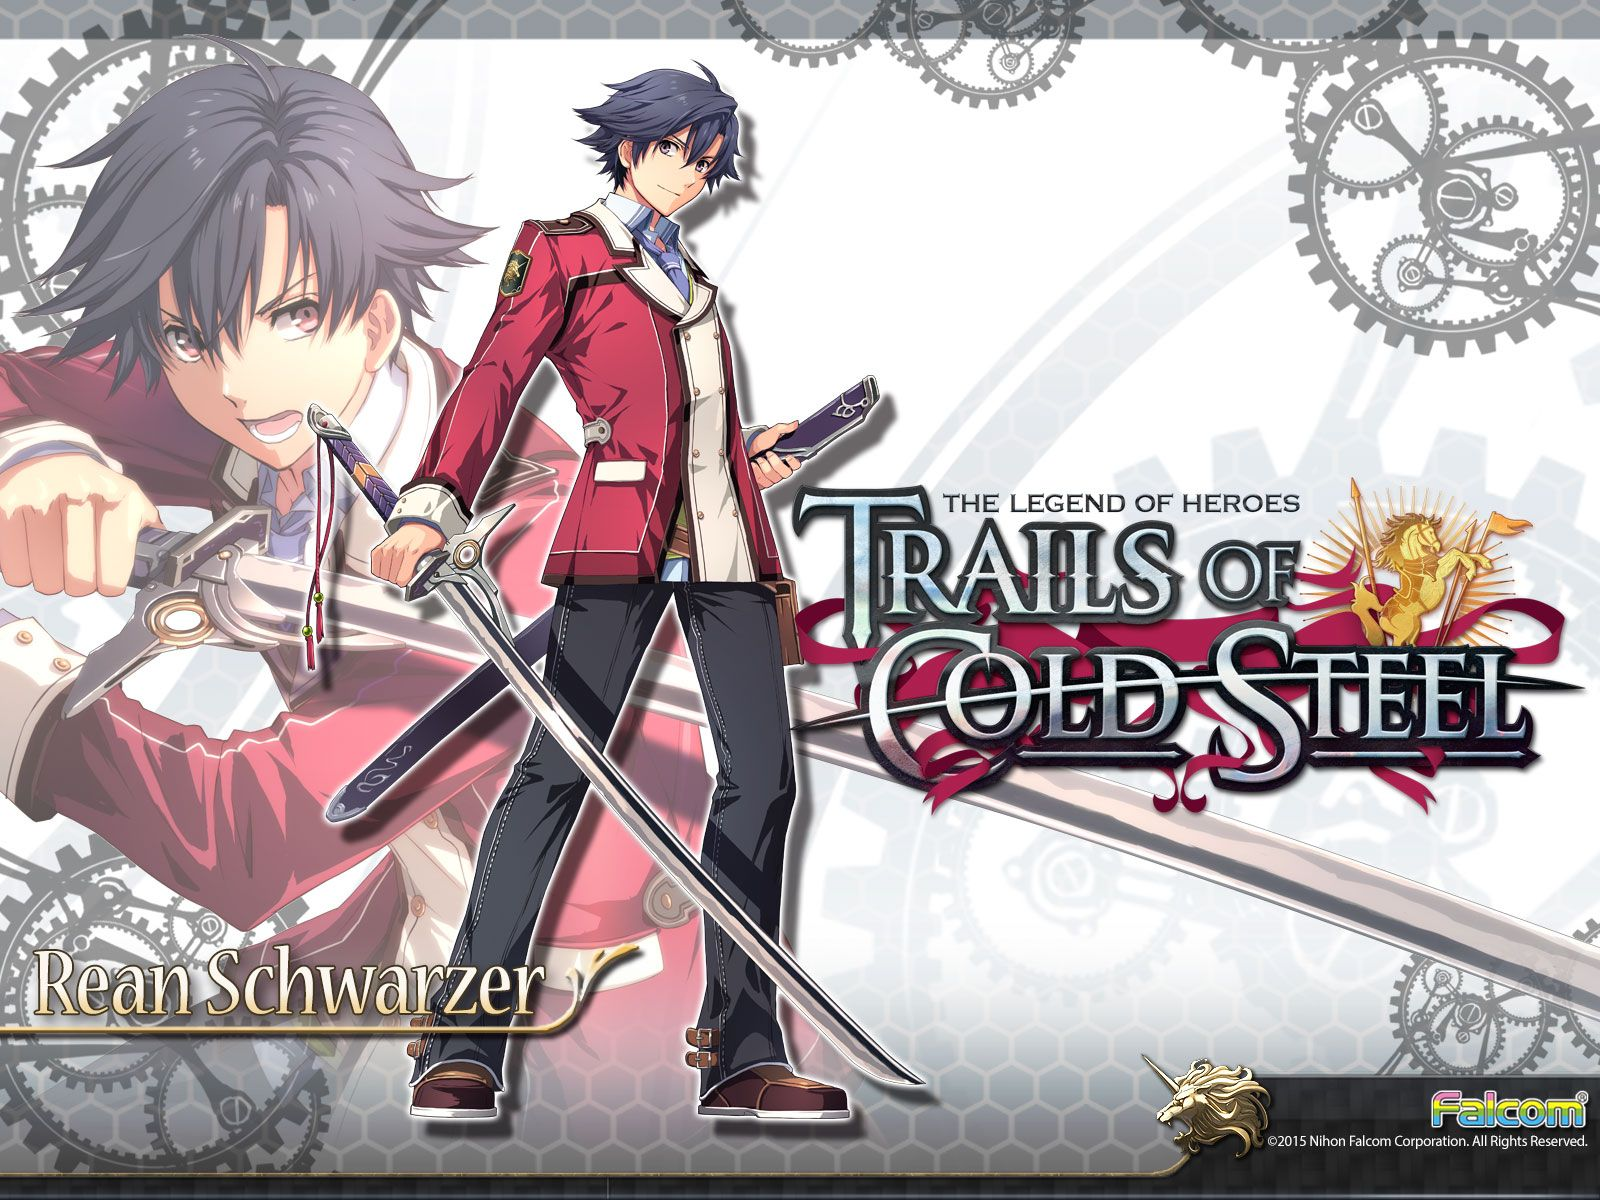 Http Nisamerica Com Games Trails Of Cold Steel Images Media Wallpapers 1 Rean1600x1200 Jpg The Legend Of Heroes Trails Of Cold Steel Anime Guys